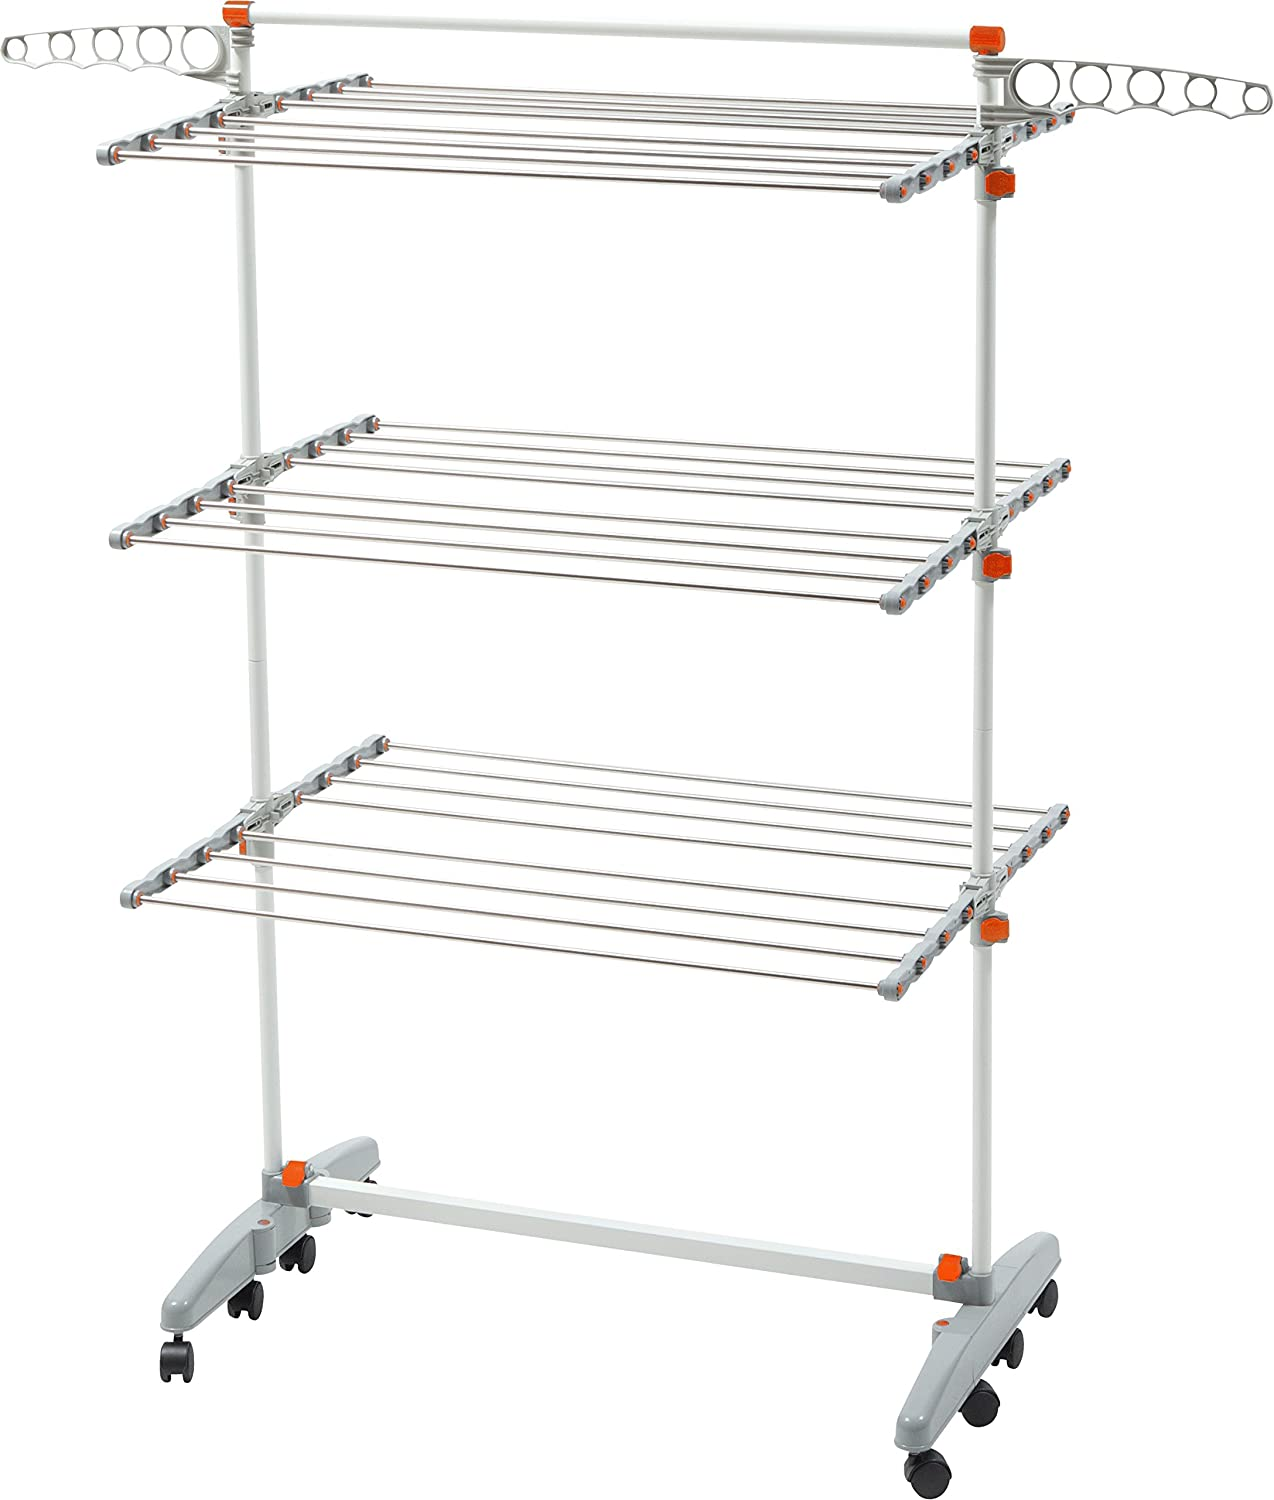 Amazon.com: Idee Premium Quality Foldable Rolling 8 Wheels Clothes Laundry  Drying Rack (Newer Version Of Badoogi BDP V12), Stainless Steel Hanging  Rods, ...